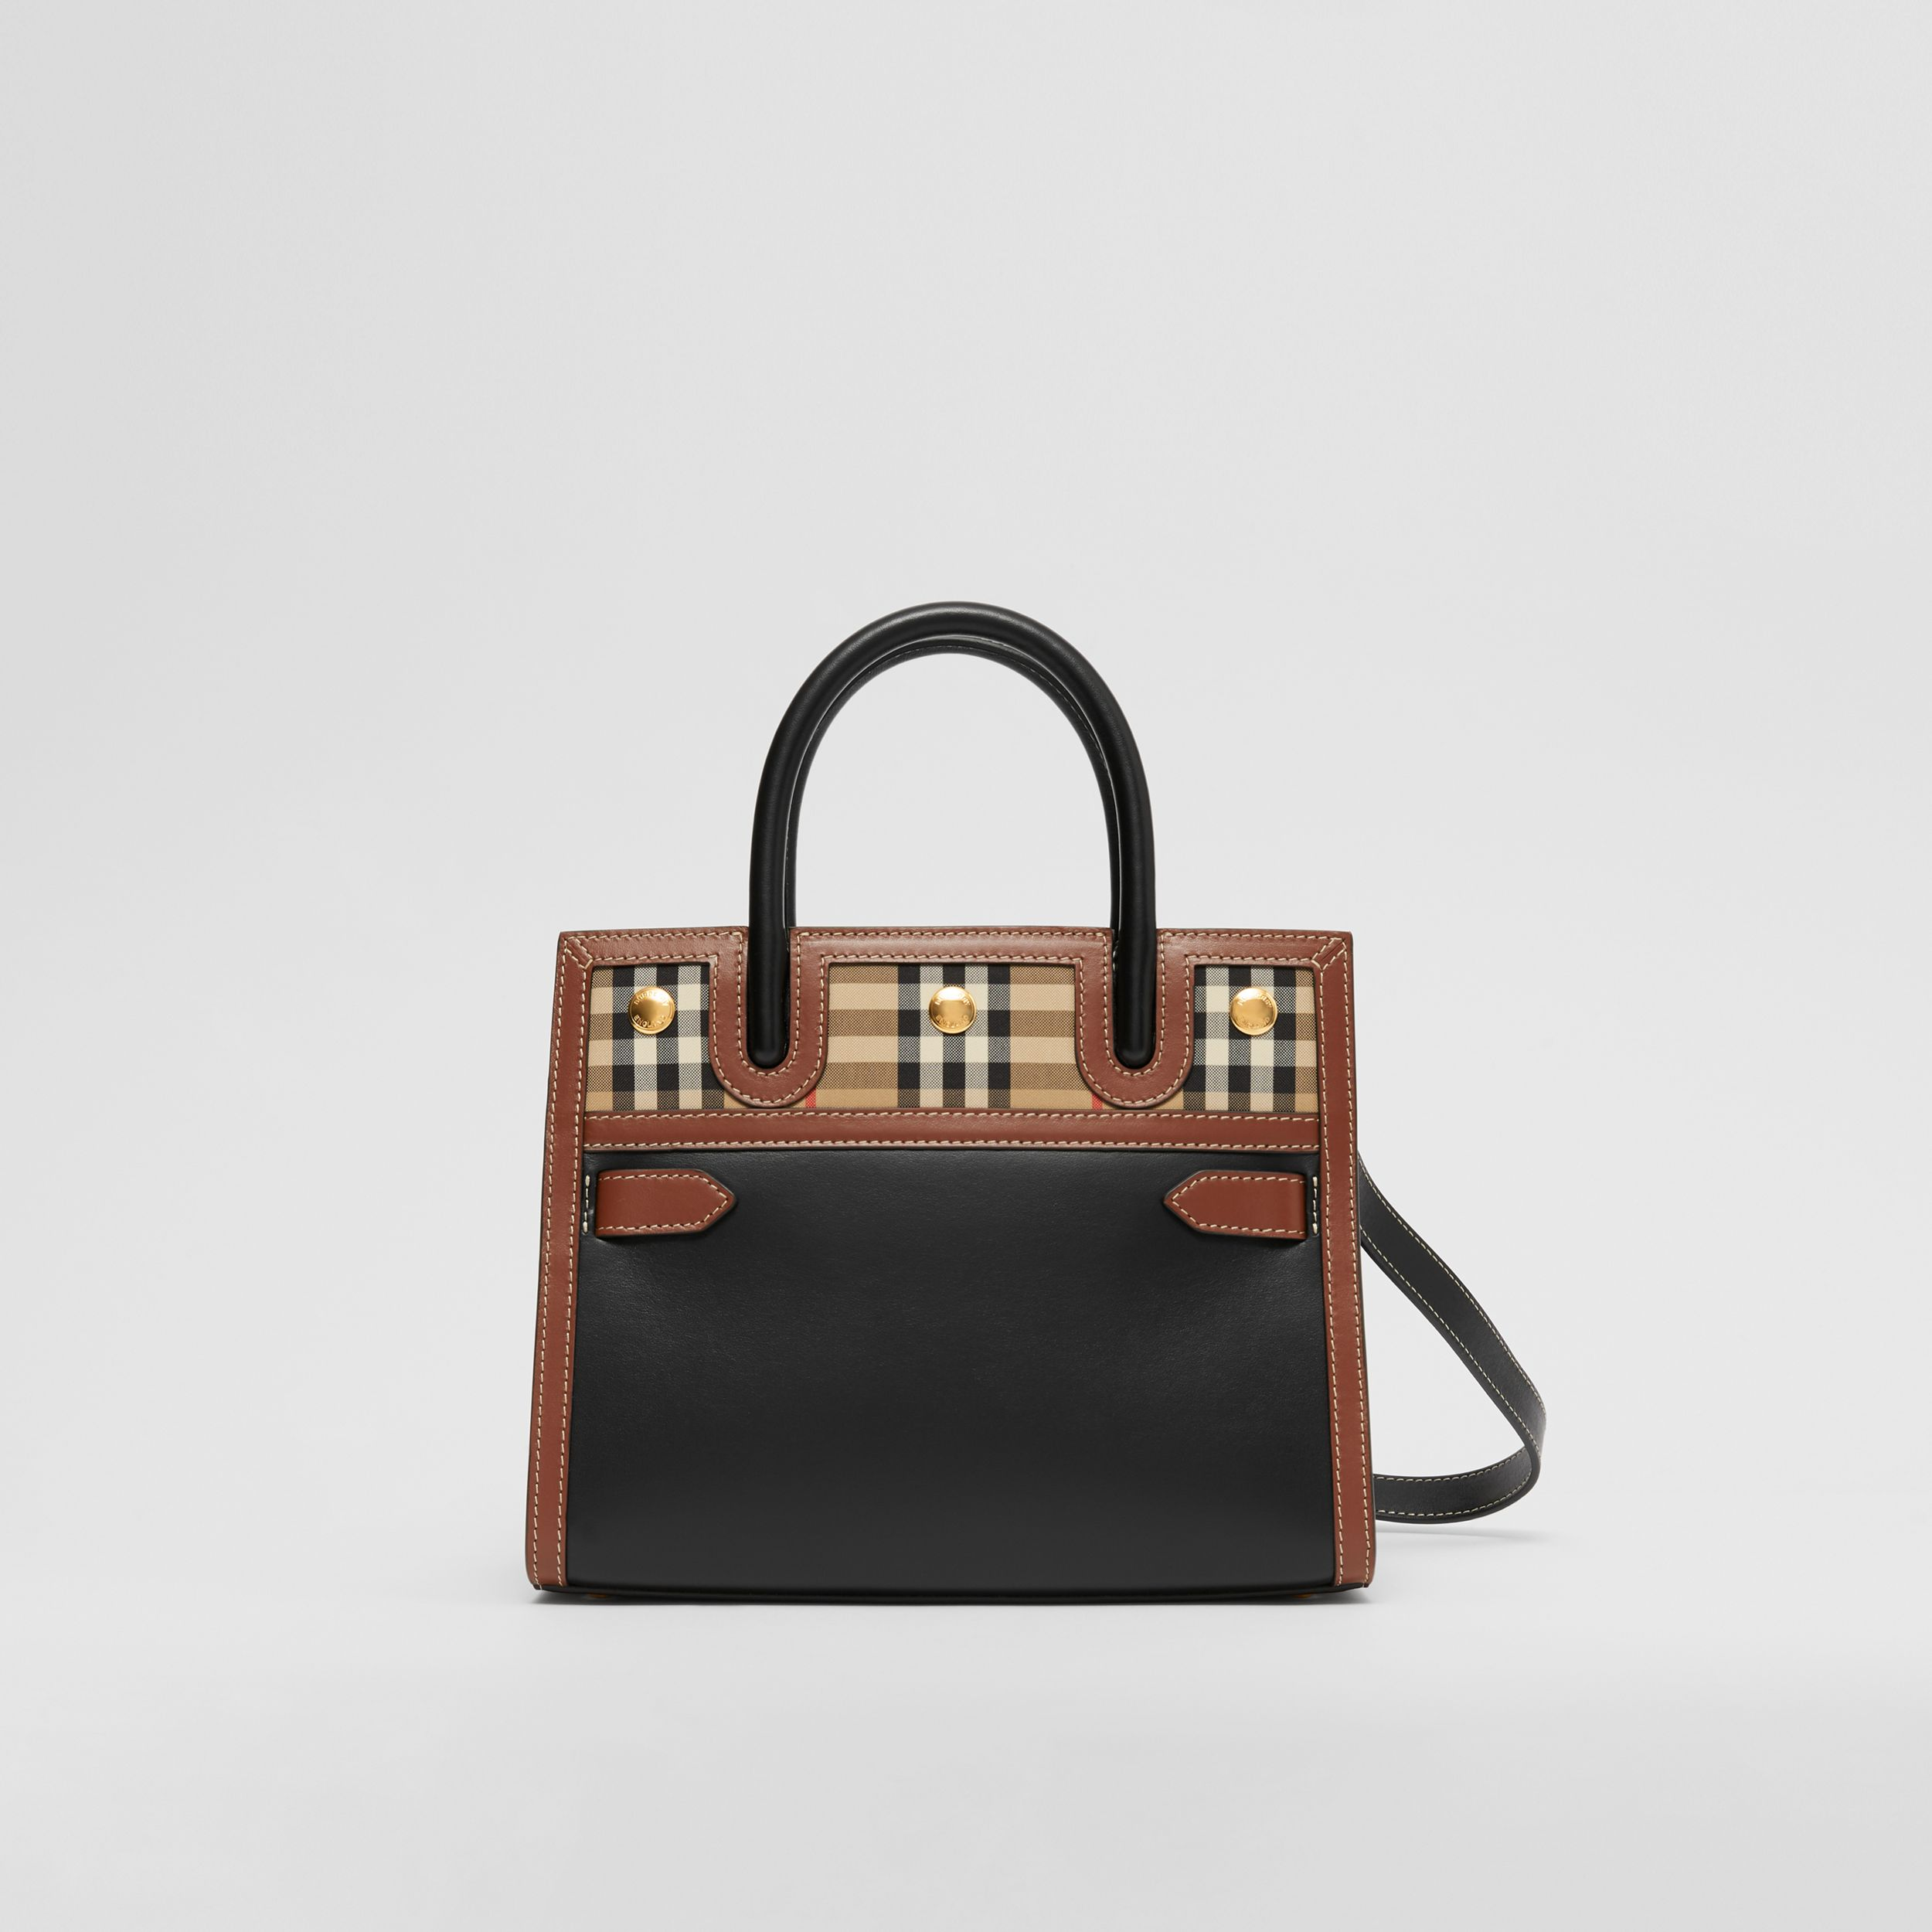 Mini Leather and Vintage Check Two-handle Title Bag in Black - Women | Burberry - 1